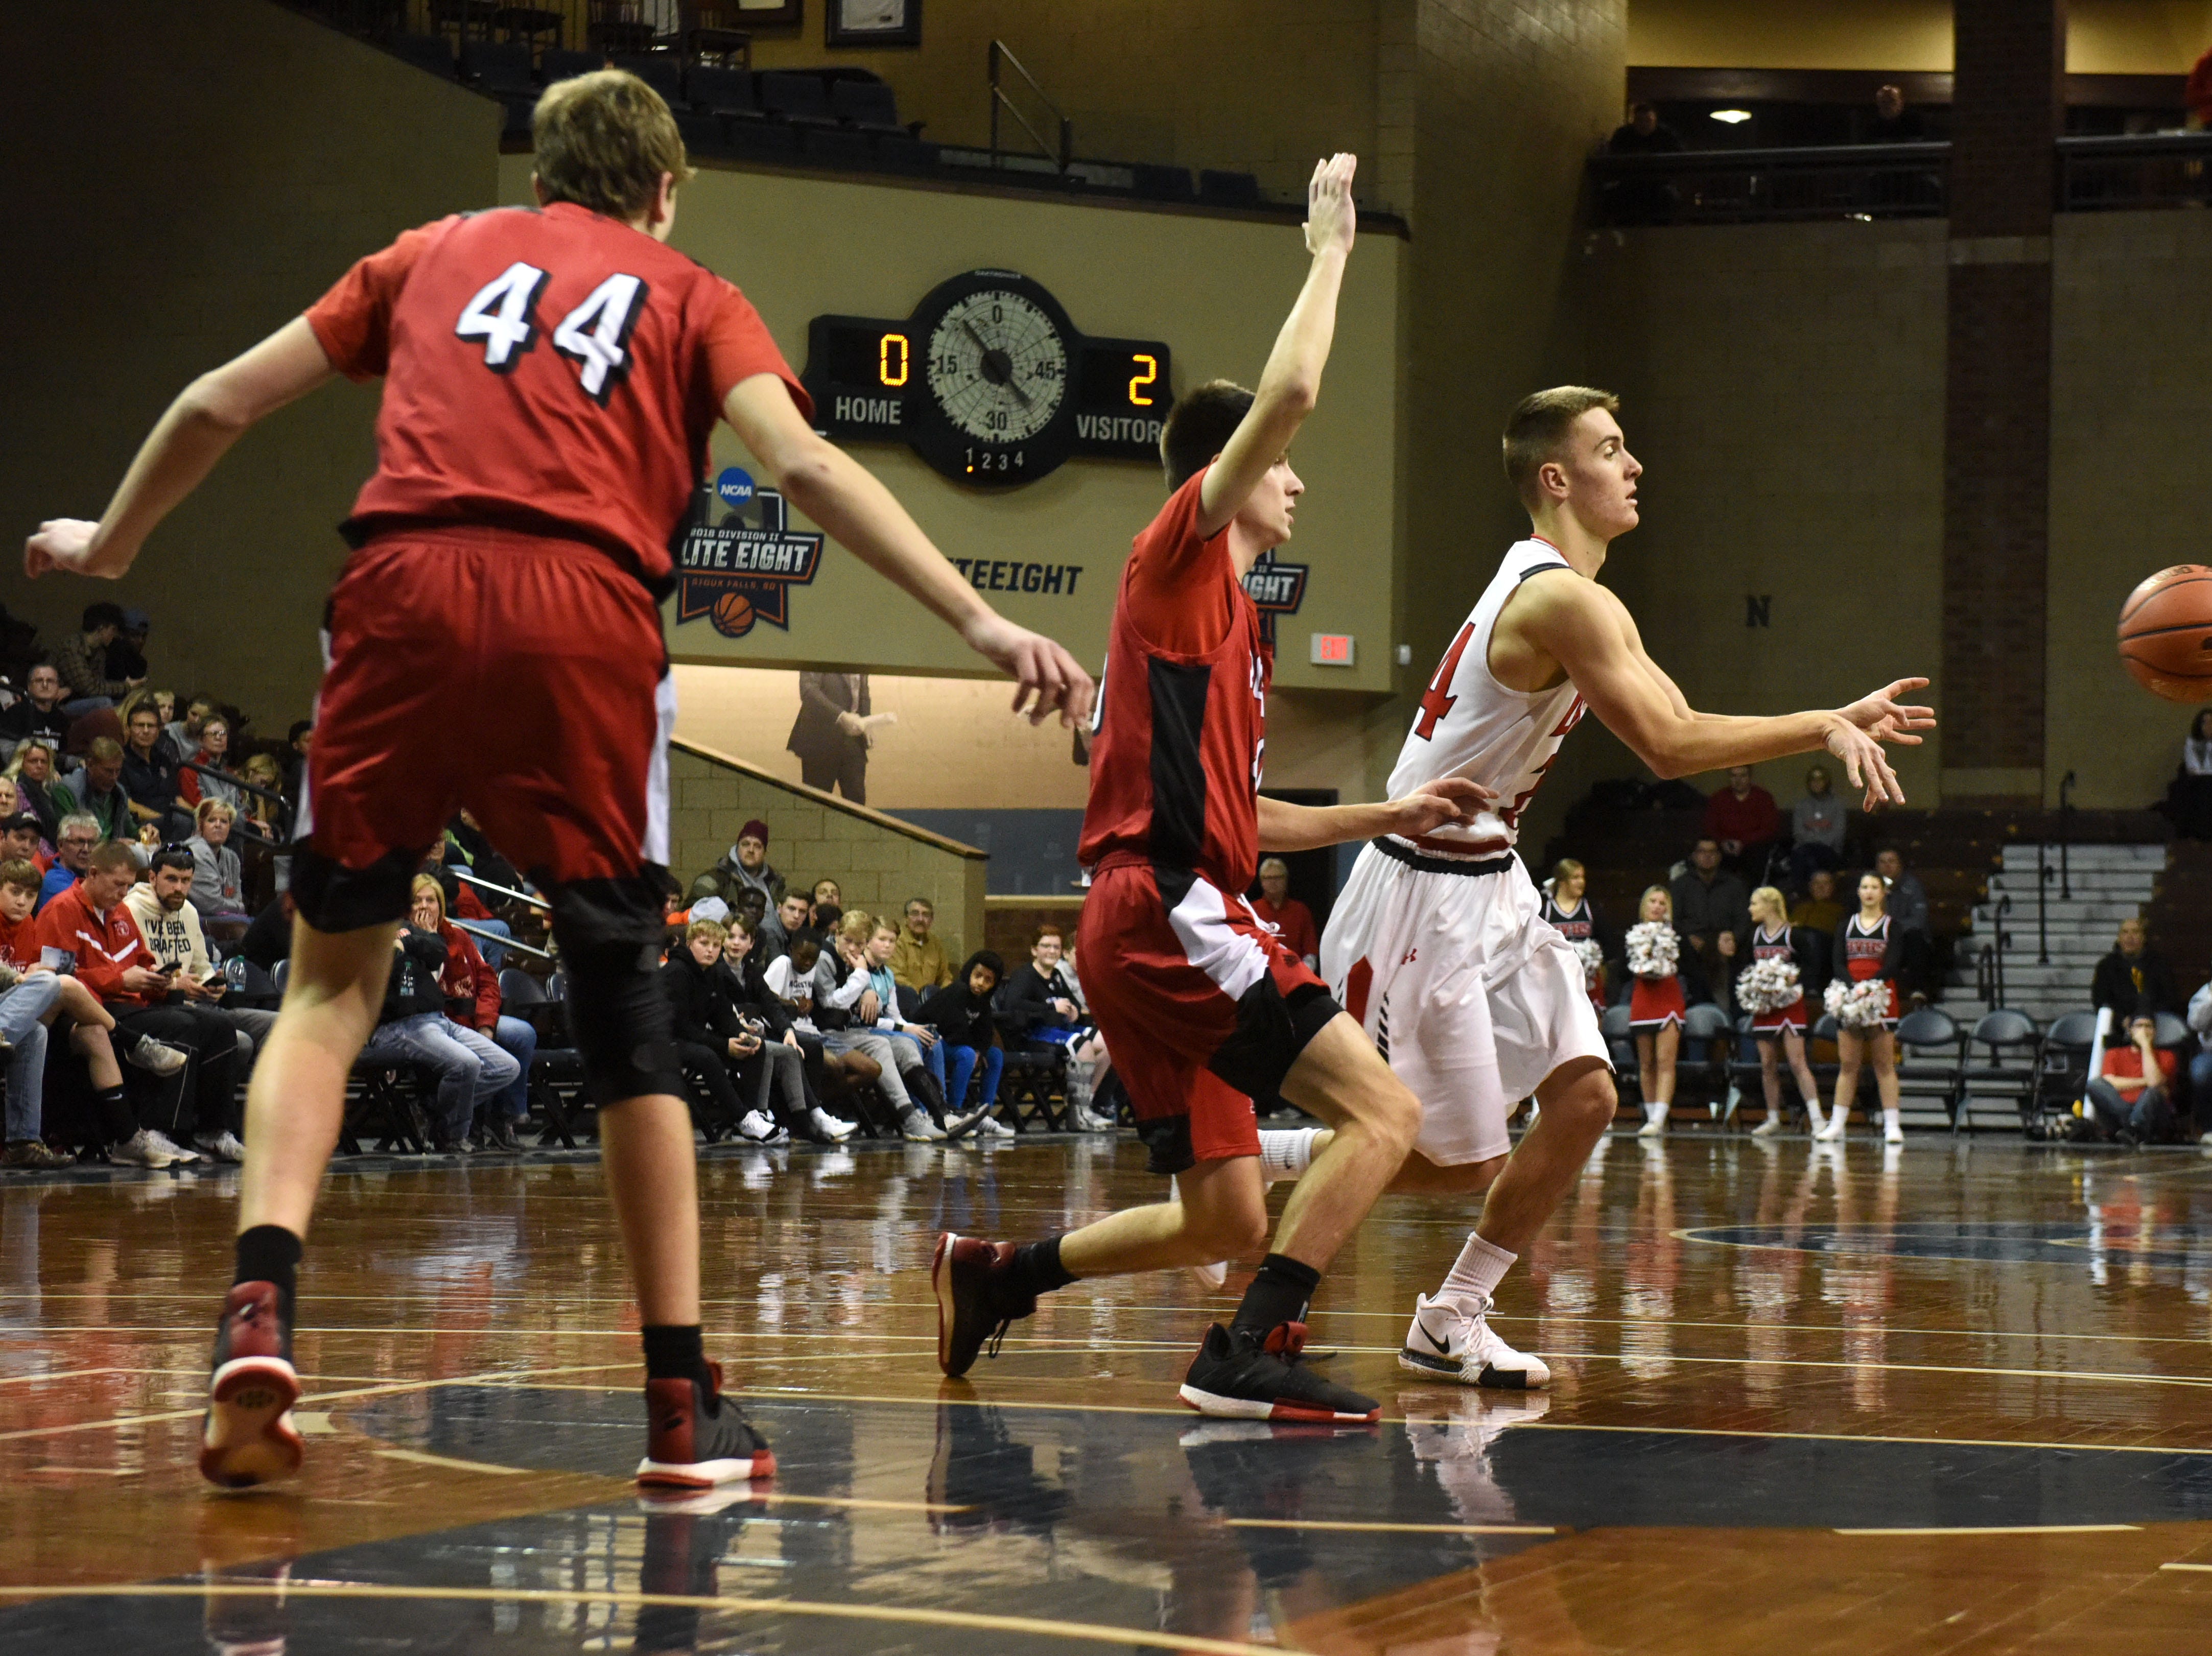 Brandon Valley's Evan Talcott (24) passes the ball during a game against John Marshall at the Hoop City Classic at the Sanford Pentagon in Sioux Falls, S.D., Saturday, Dec. 29, 2018.